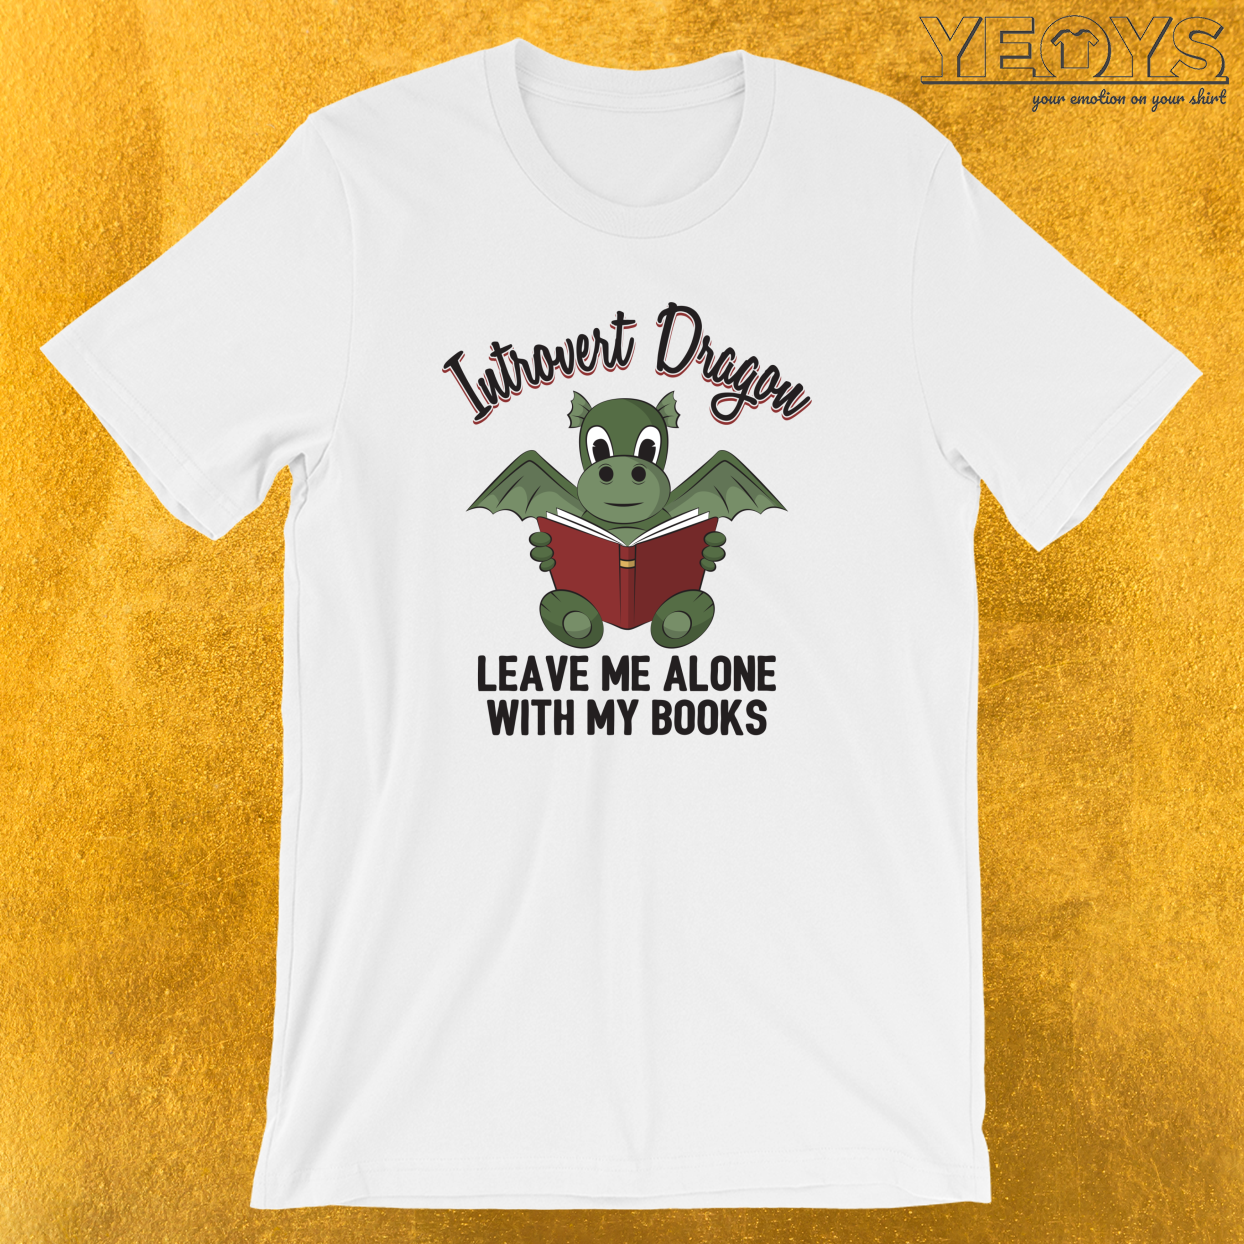 Introvert Dragon Leave Me Alone T-Shirt